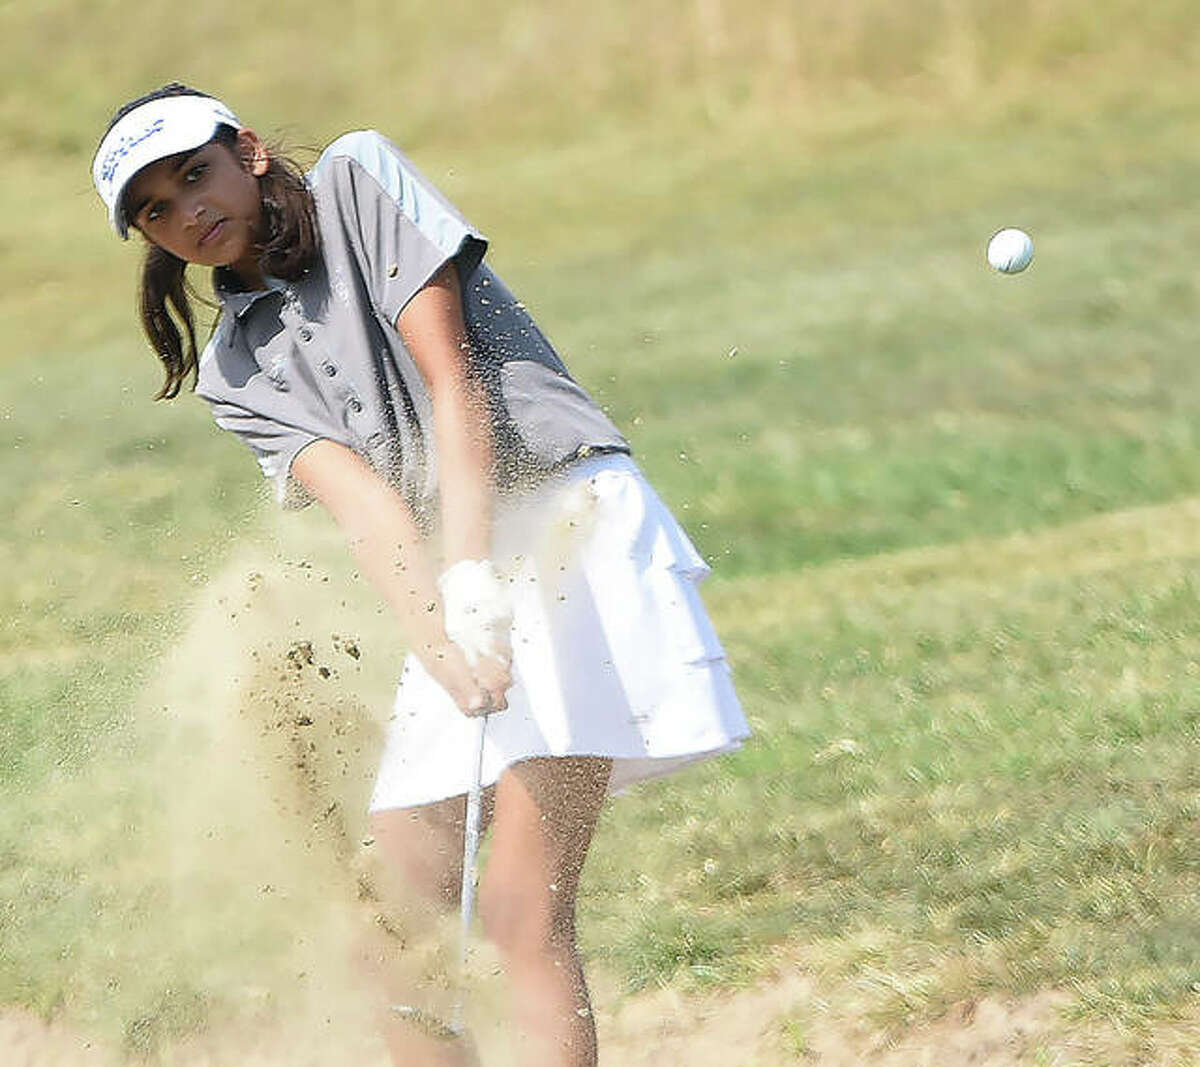 Edwardsville's Ruhee Gupchup escapes the bunker on No. 17 on Thursday in the Class 2A Edwardsville Regional at Oak Brook Golf Club in Edwardsville.